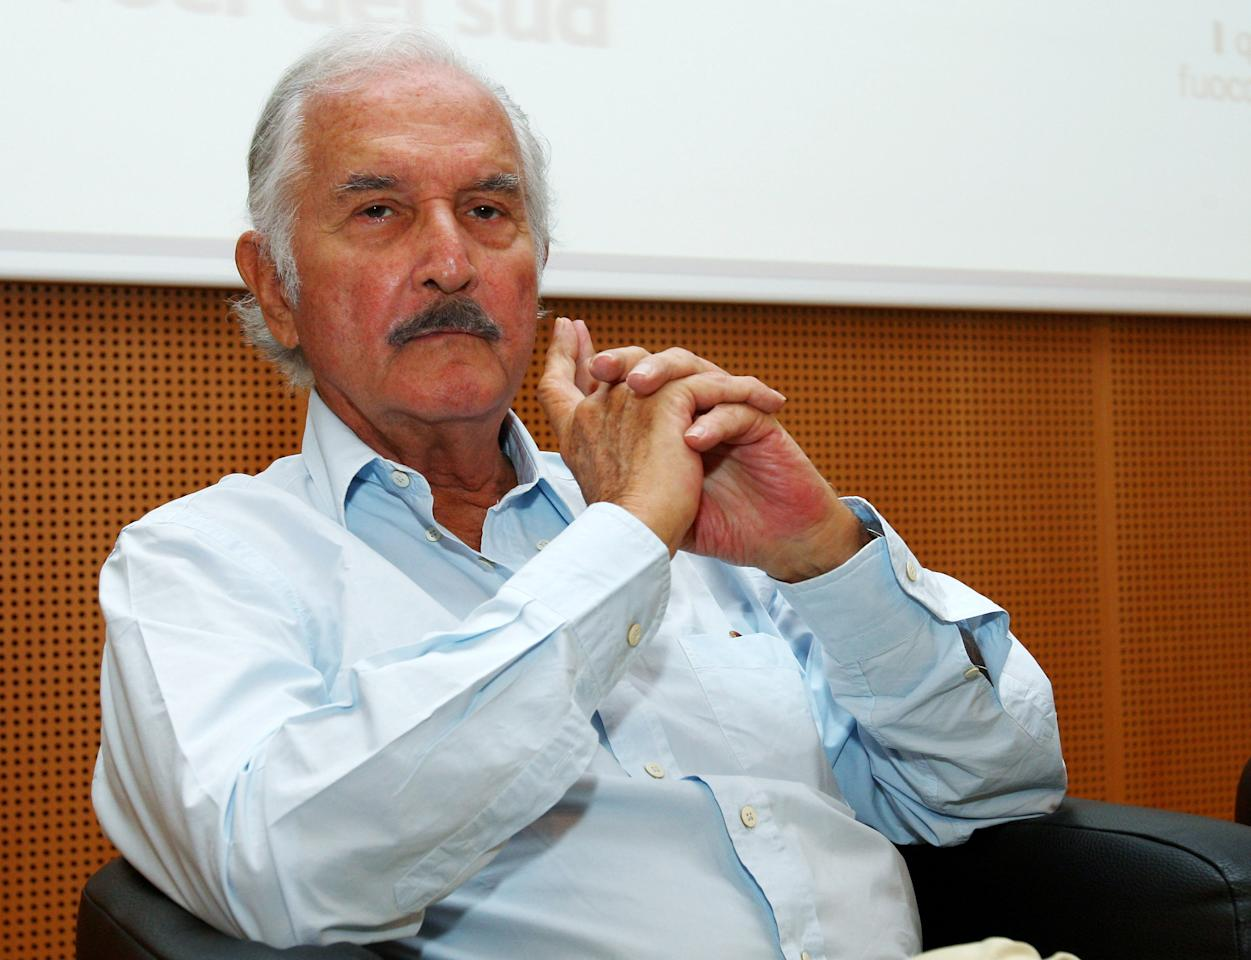 MILAN, ITALY - FILE:  Author Carlos Fuentes attends a cocktail for authors at La Milanesiana 2008 held at Sala Buzzati on July 09, 2008 in Milan, Italy.  Latin American writer Carlos Fuentes died May 15, 2012 in Mexico City.  He was 83.  (Photo by Vittorio Zunino Celotto/Getty Images)